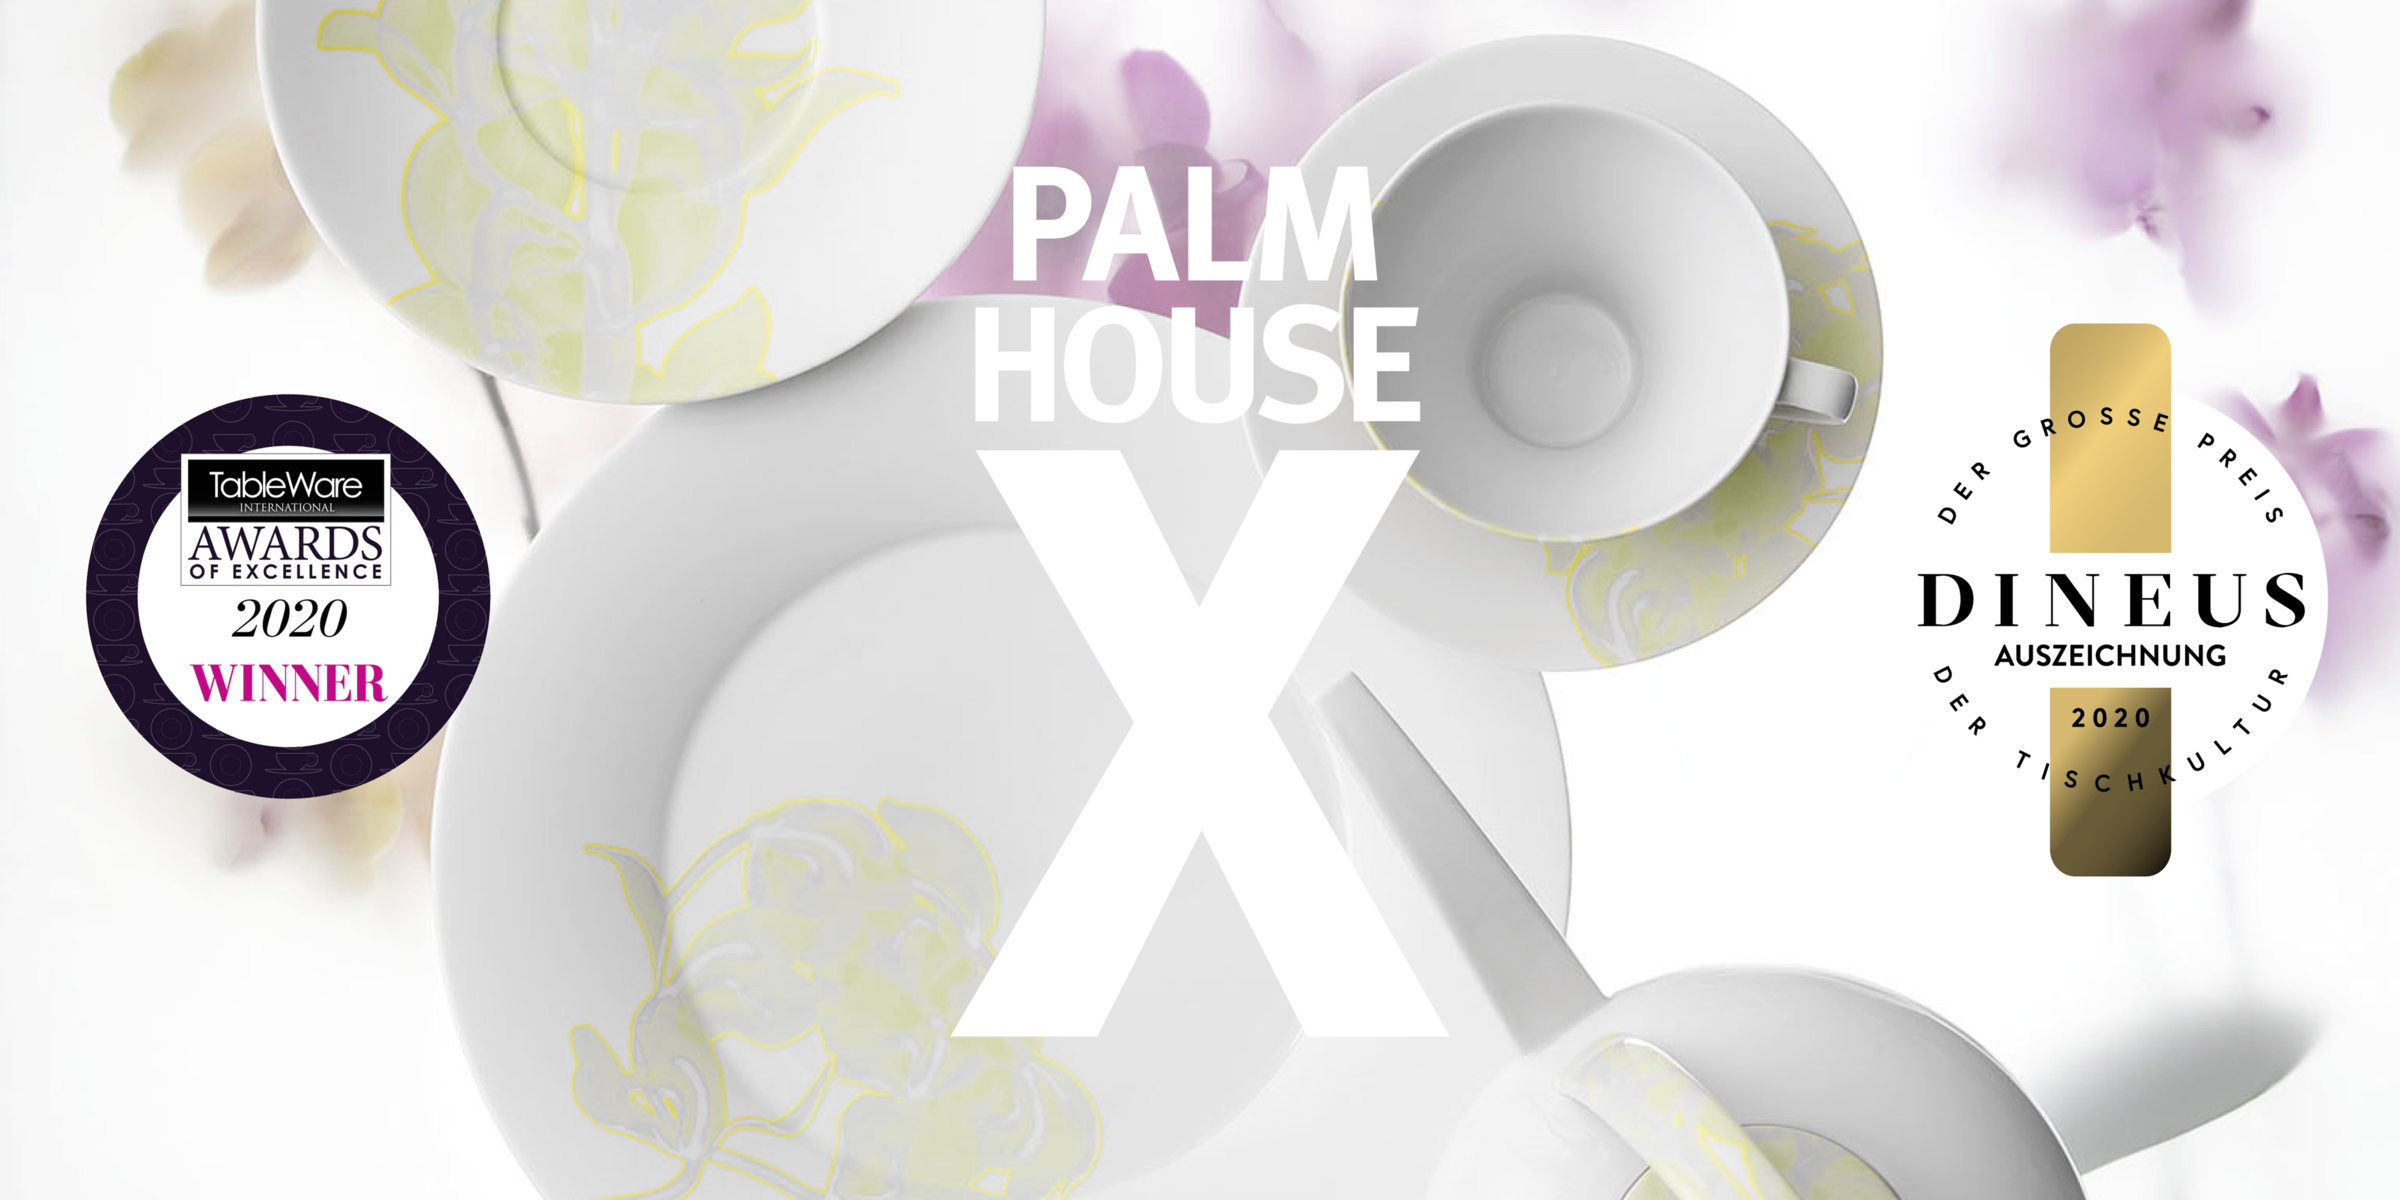 palmhouse awards story